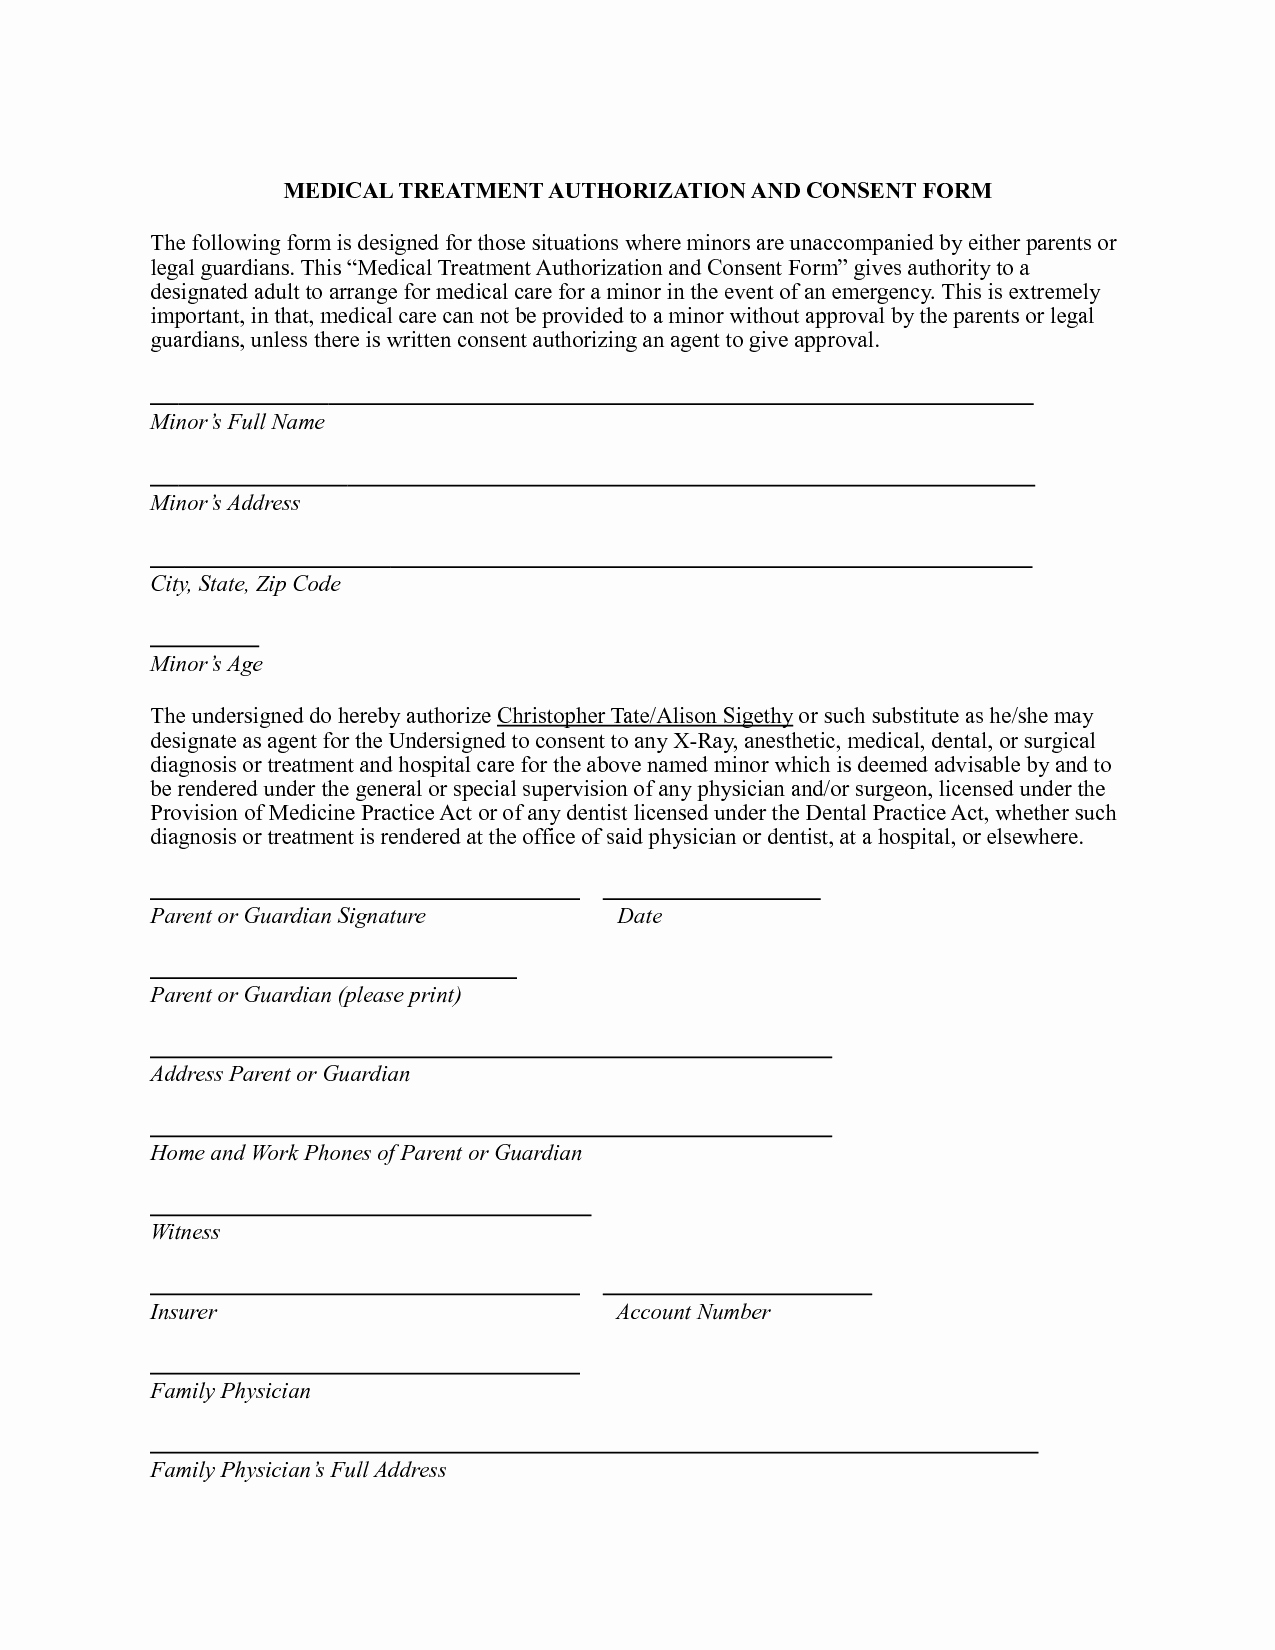 Child Medical Consent form Template Awesome Medical Authorization form